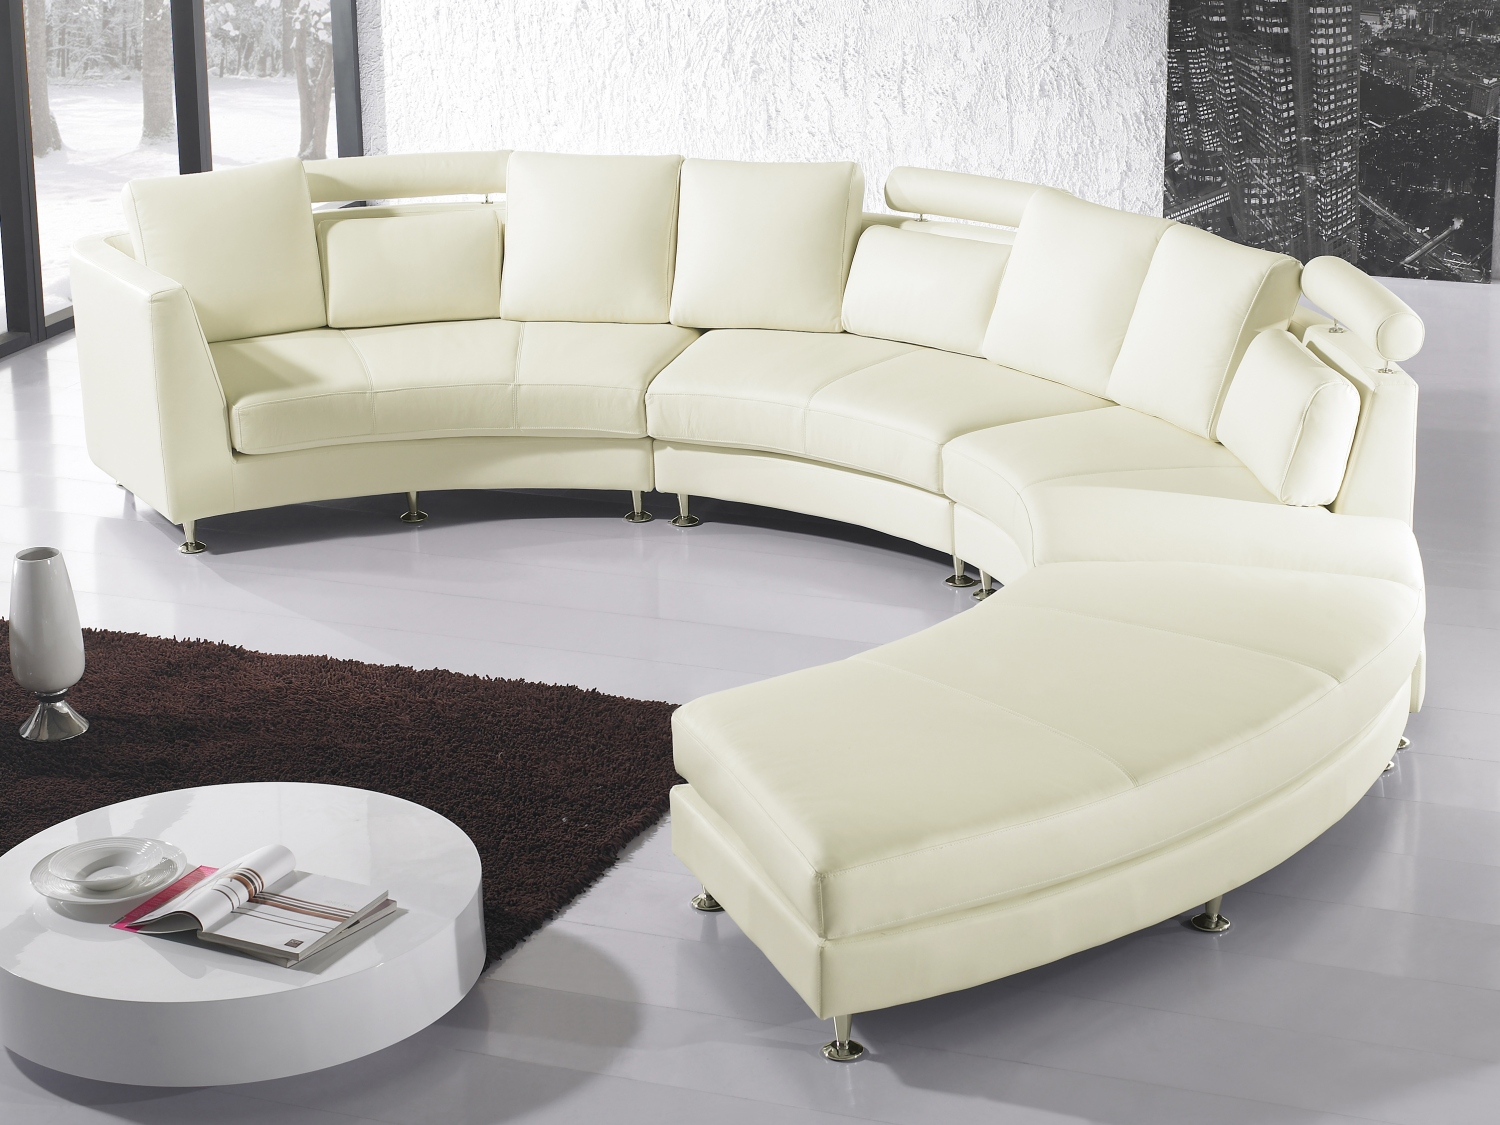 Cream Leather Corner Sofa 7 Seater Couch Large Circle